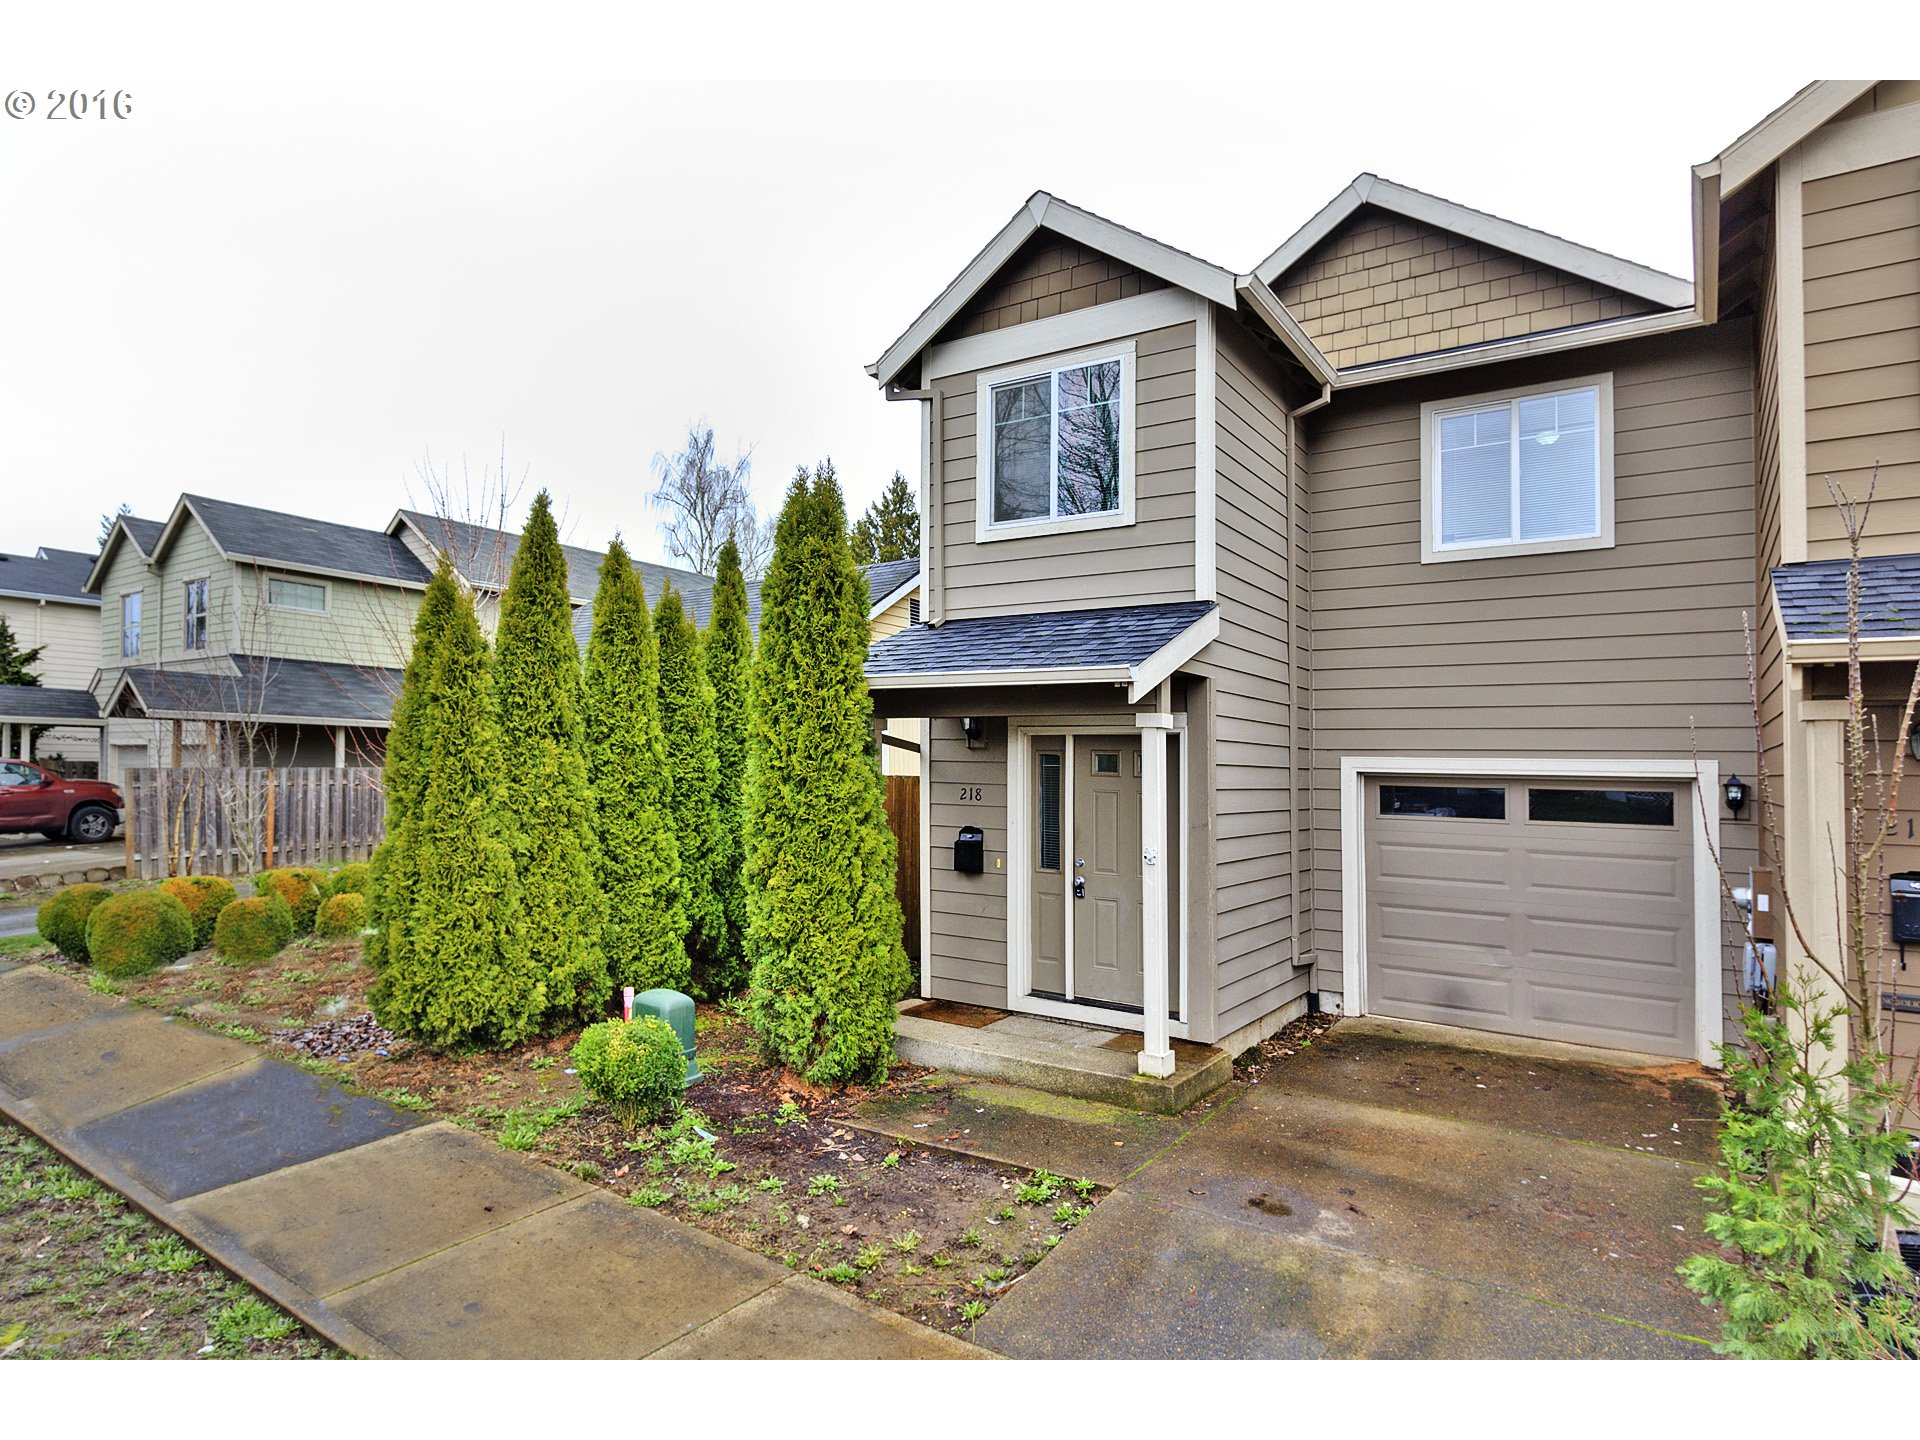 218 NW Connell Ave, Hillsboro, OR